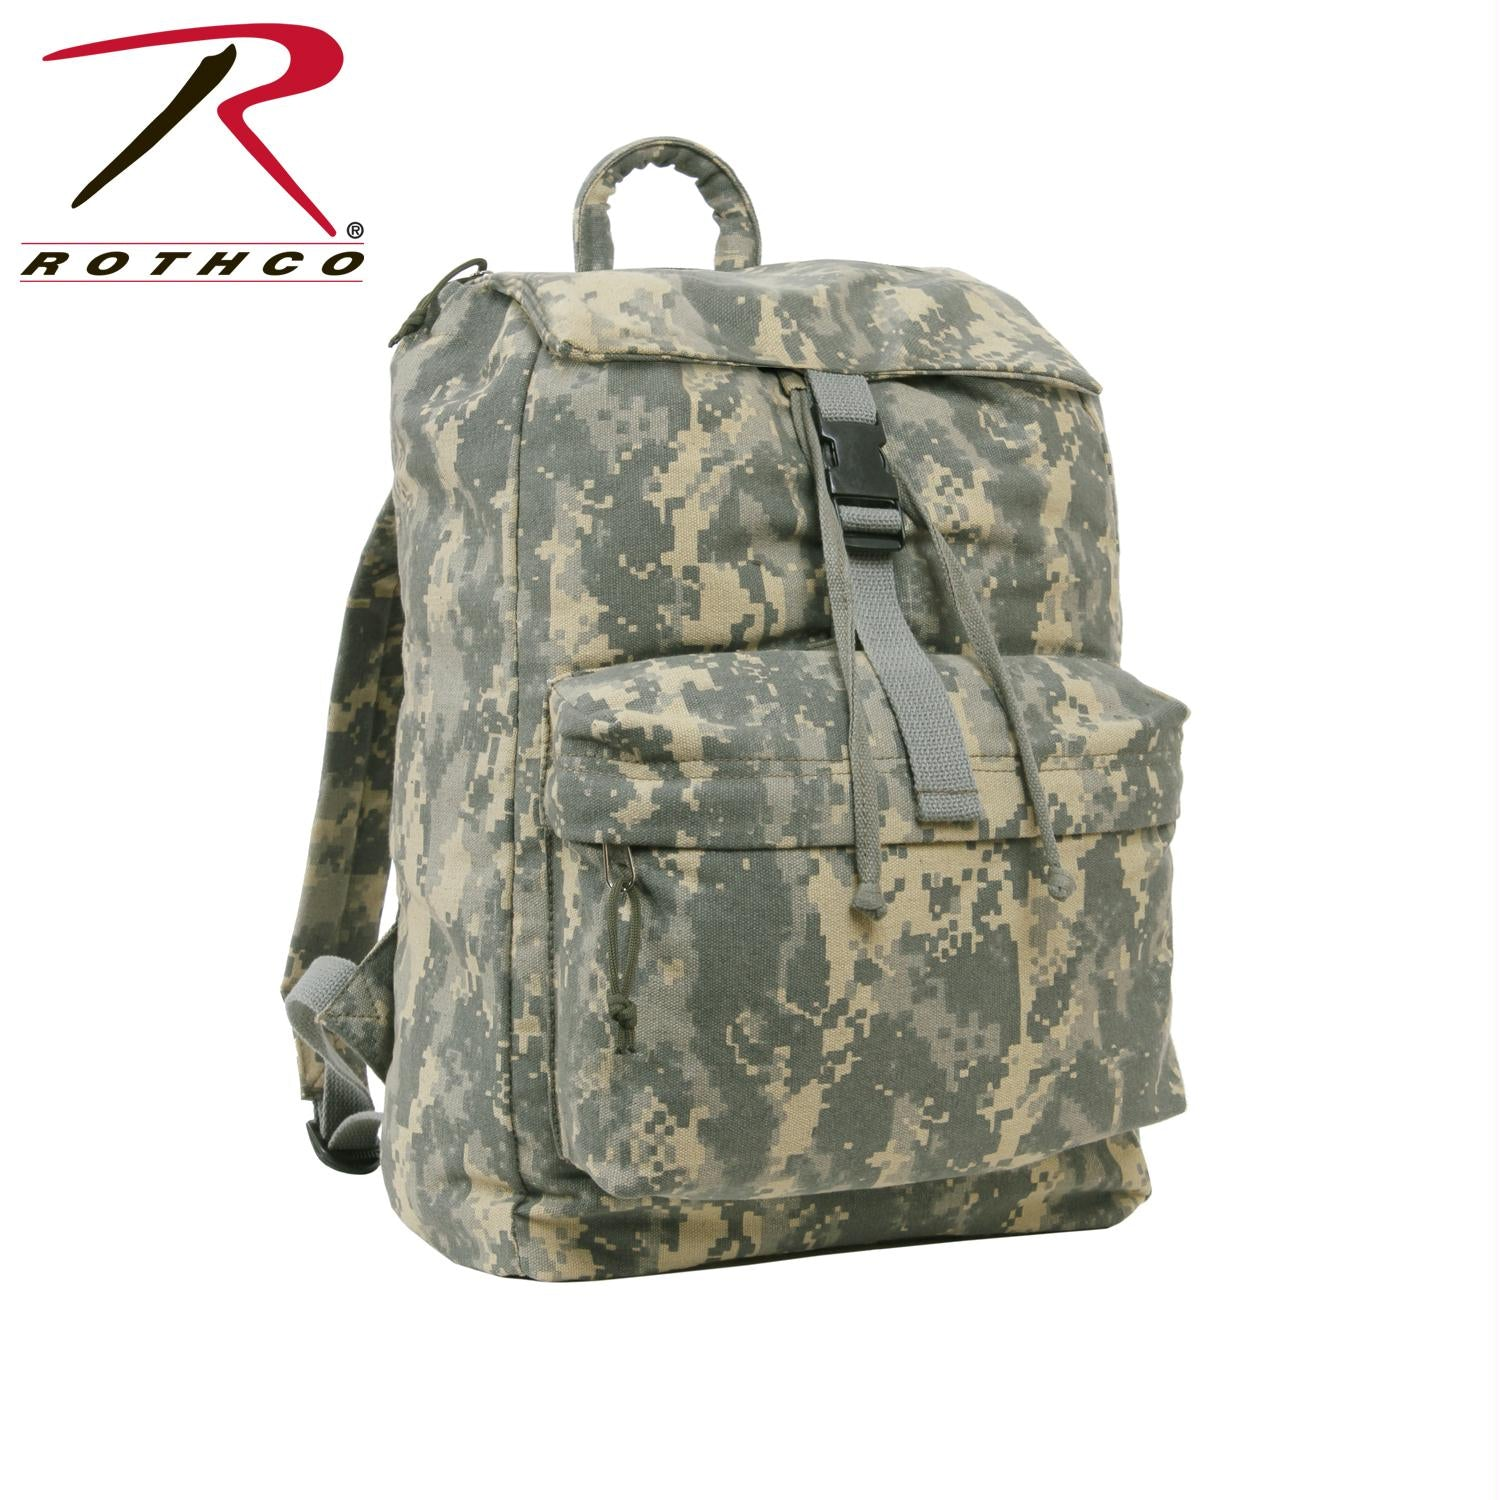 Rothco Canvas Daypack - ACU Digital Camo